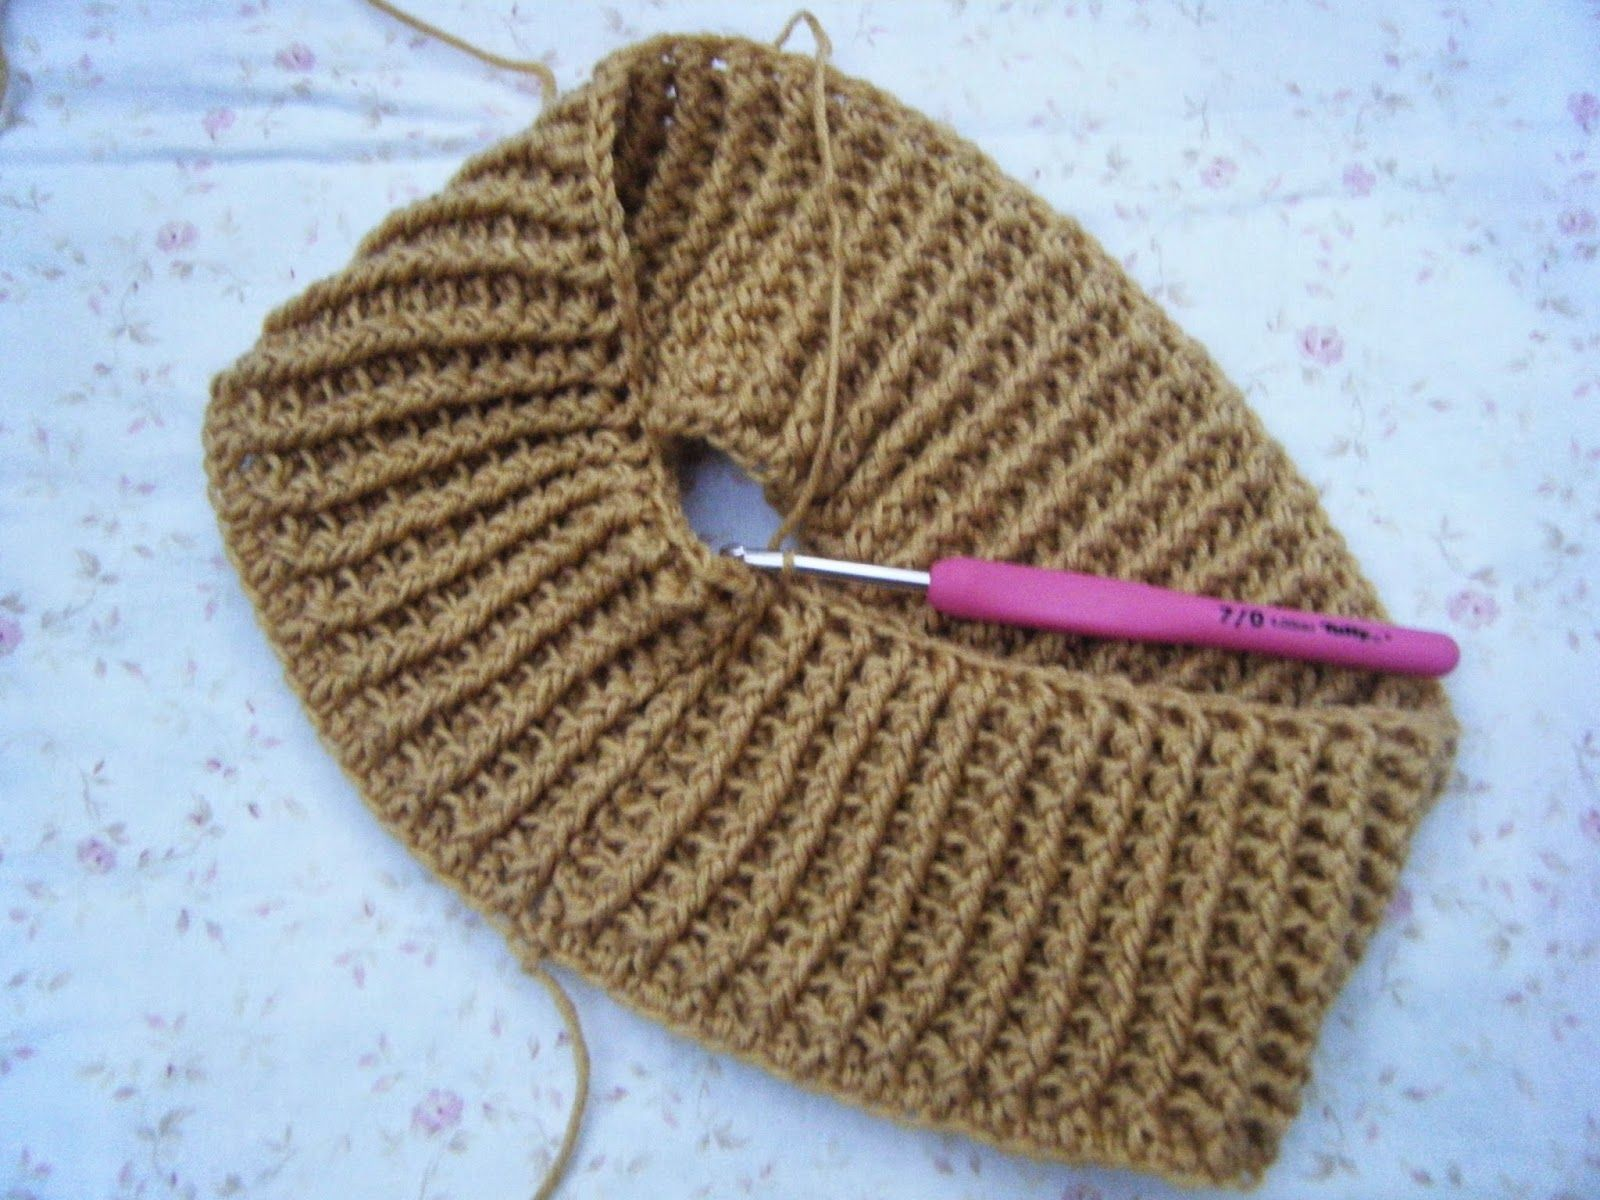 How to make a ribbed crochet collar   Crochet - Stitches & Tips ...